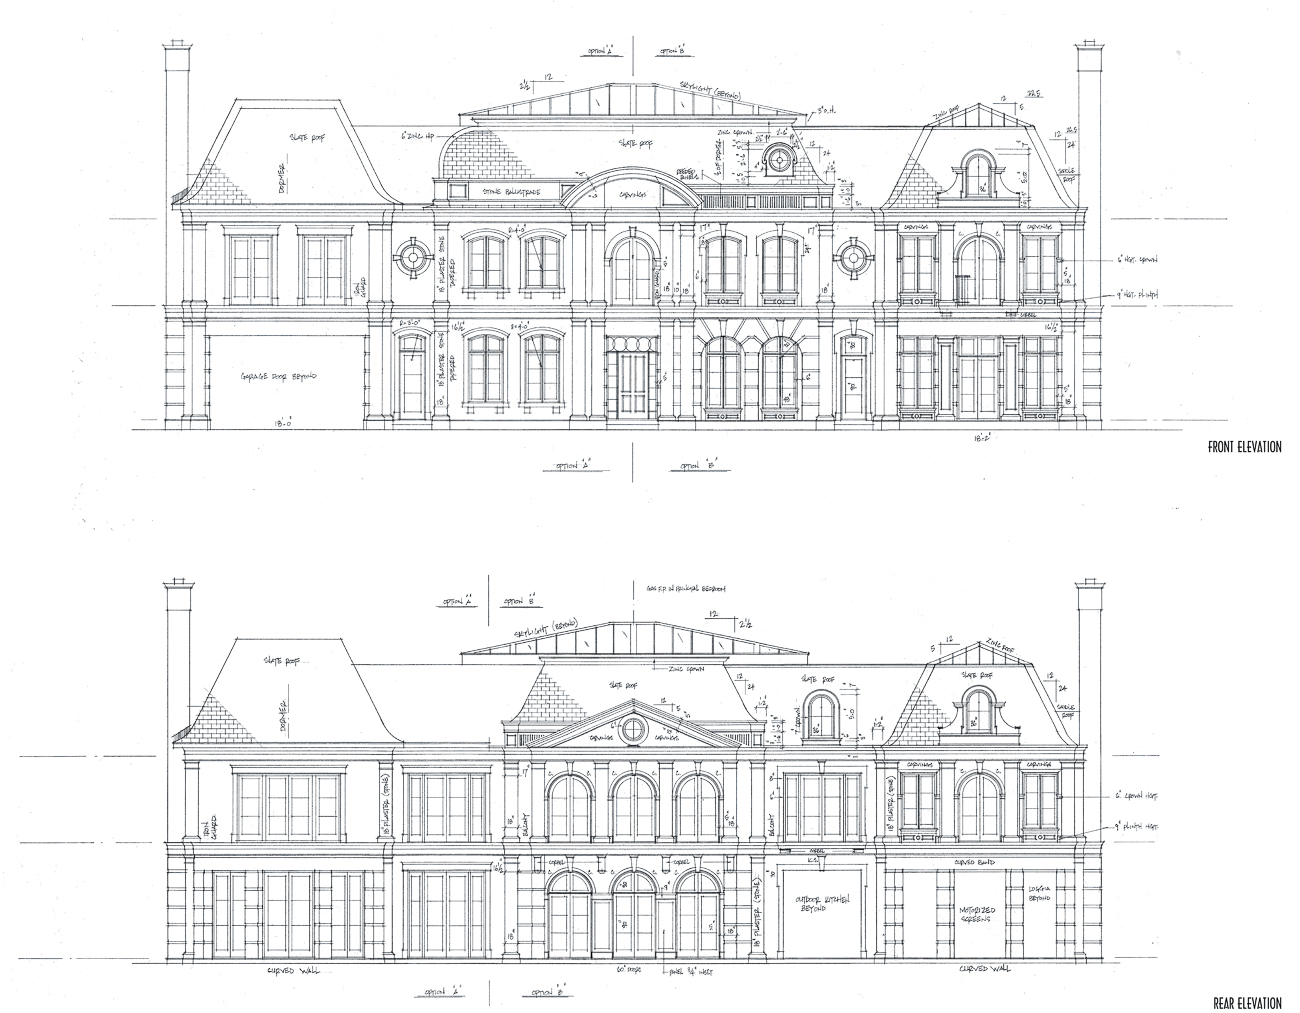 20170420-WEBSITE DiCapo Residence 01-A01 FRONT & REAR Elevation.jpg